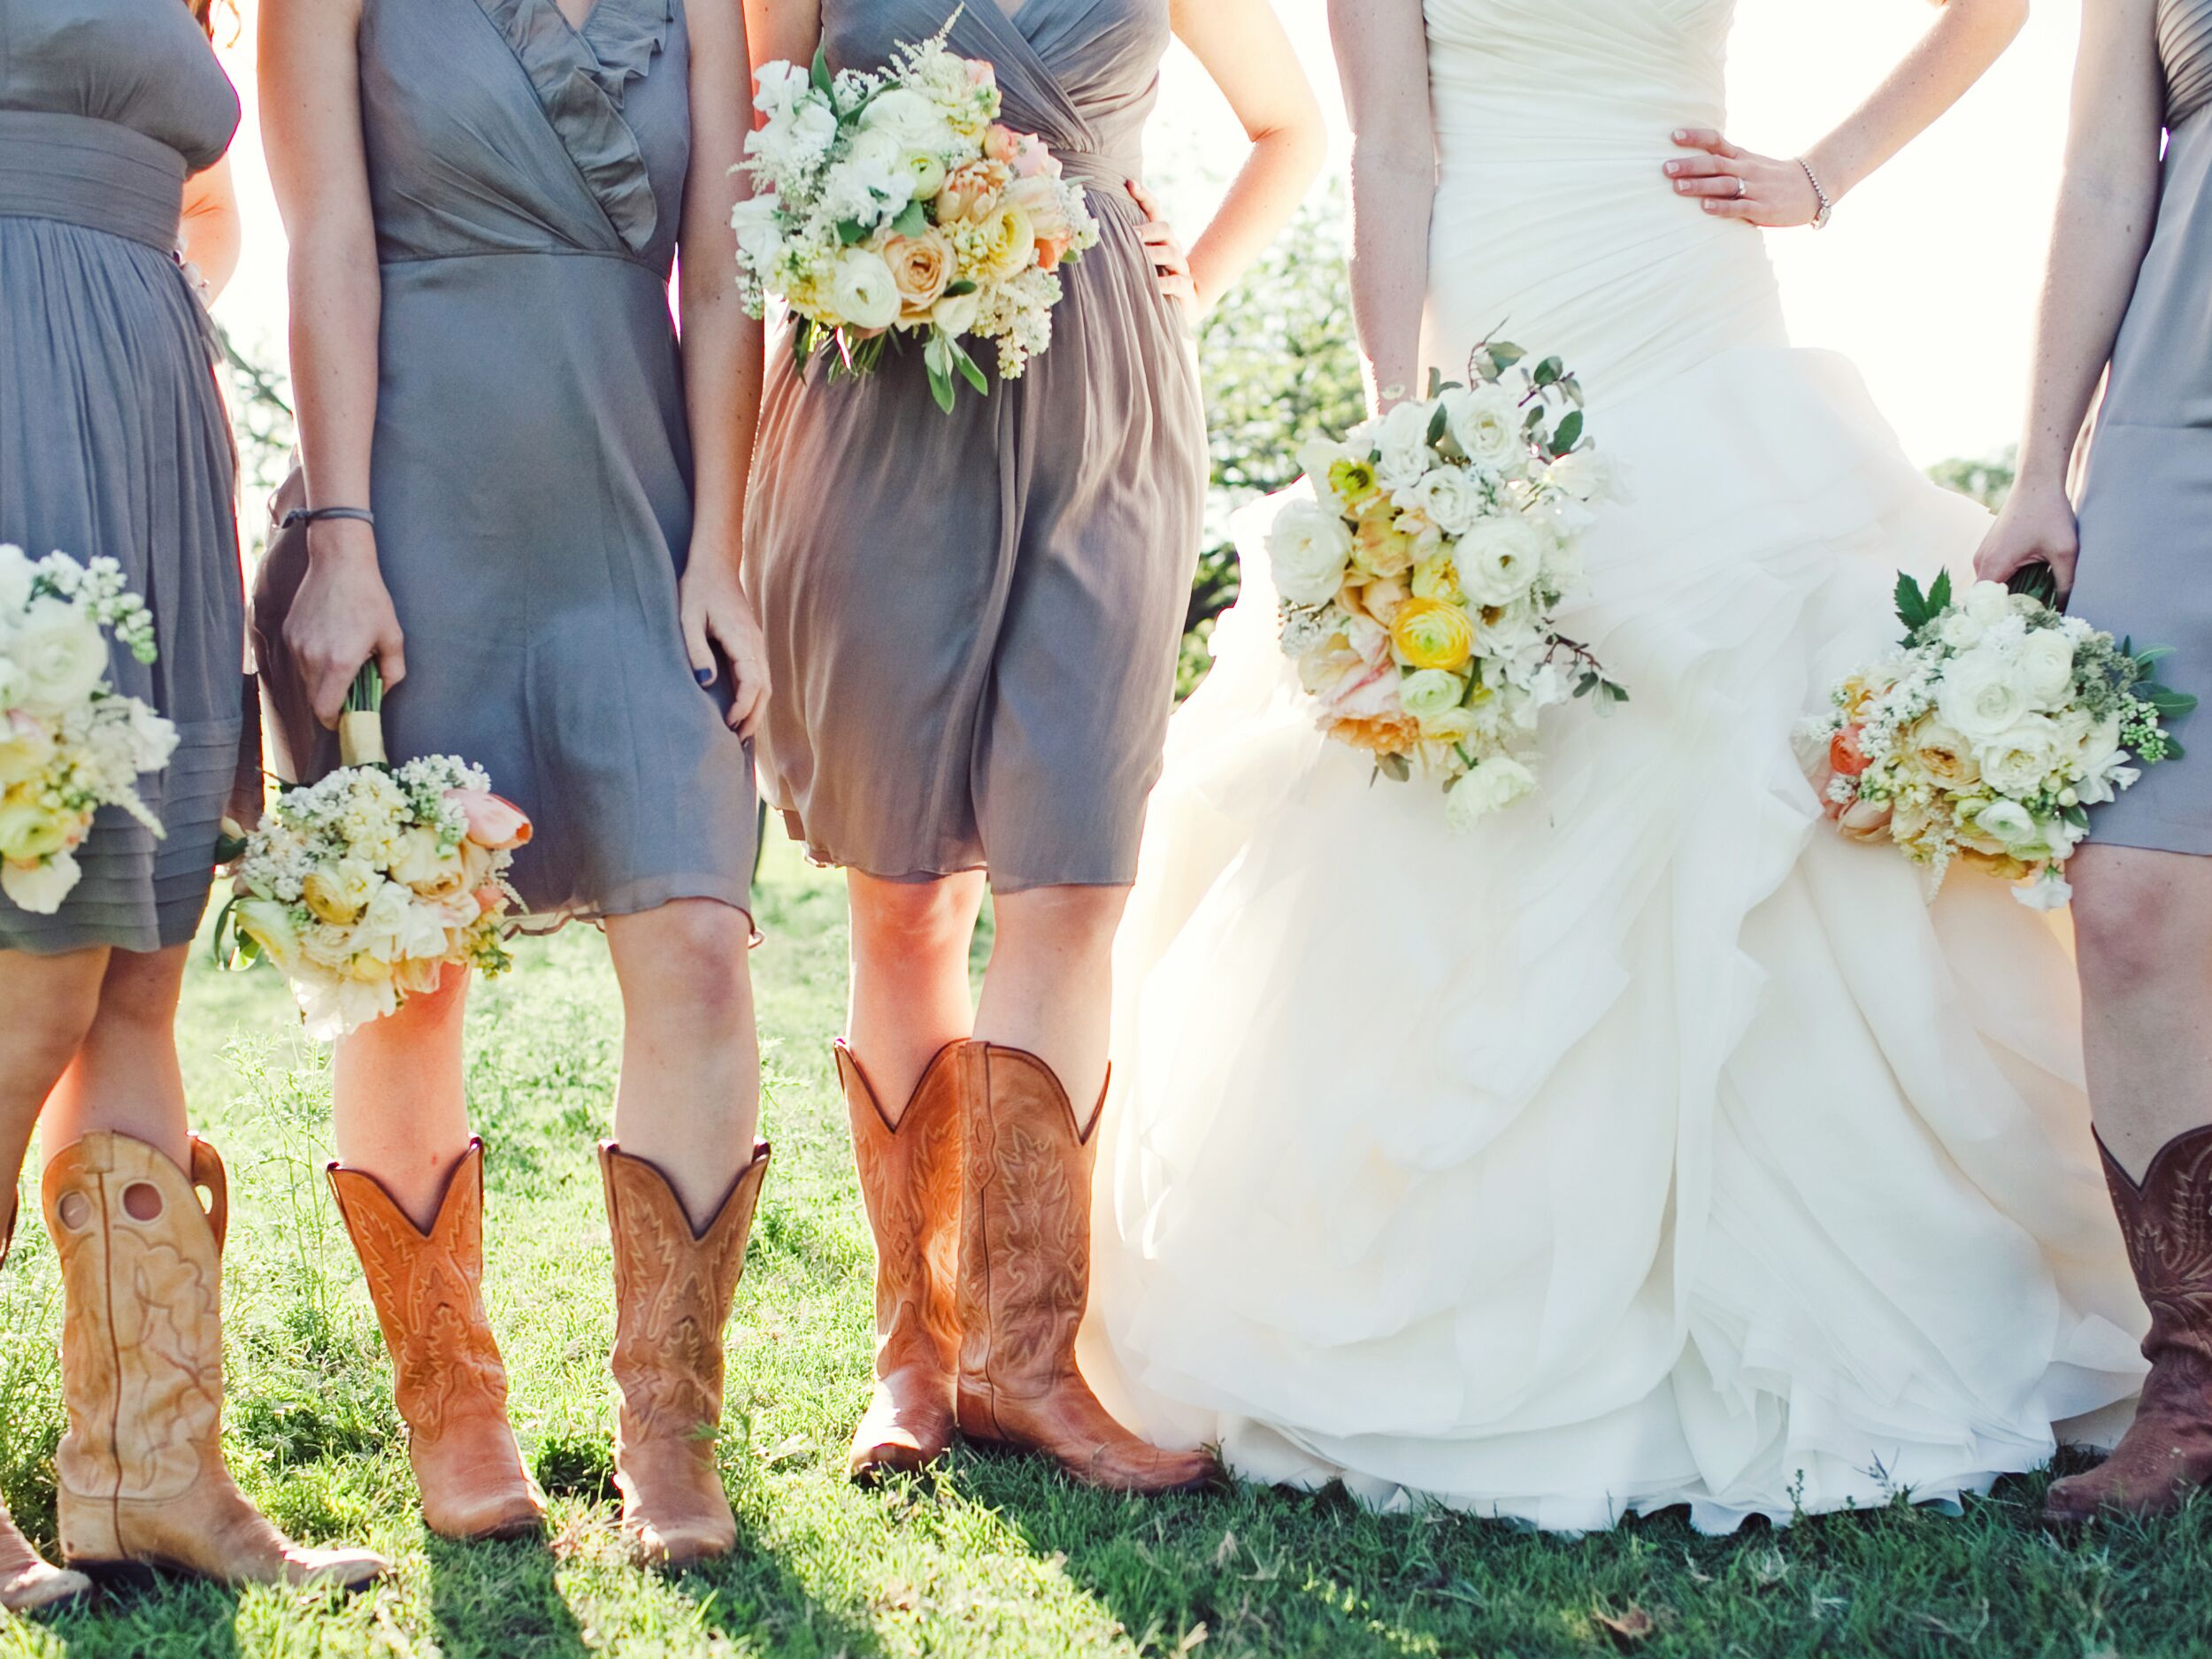 Country Wedding Songs - Top Country Songs - photo#28